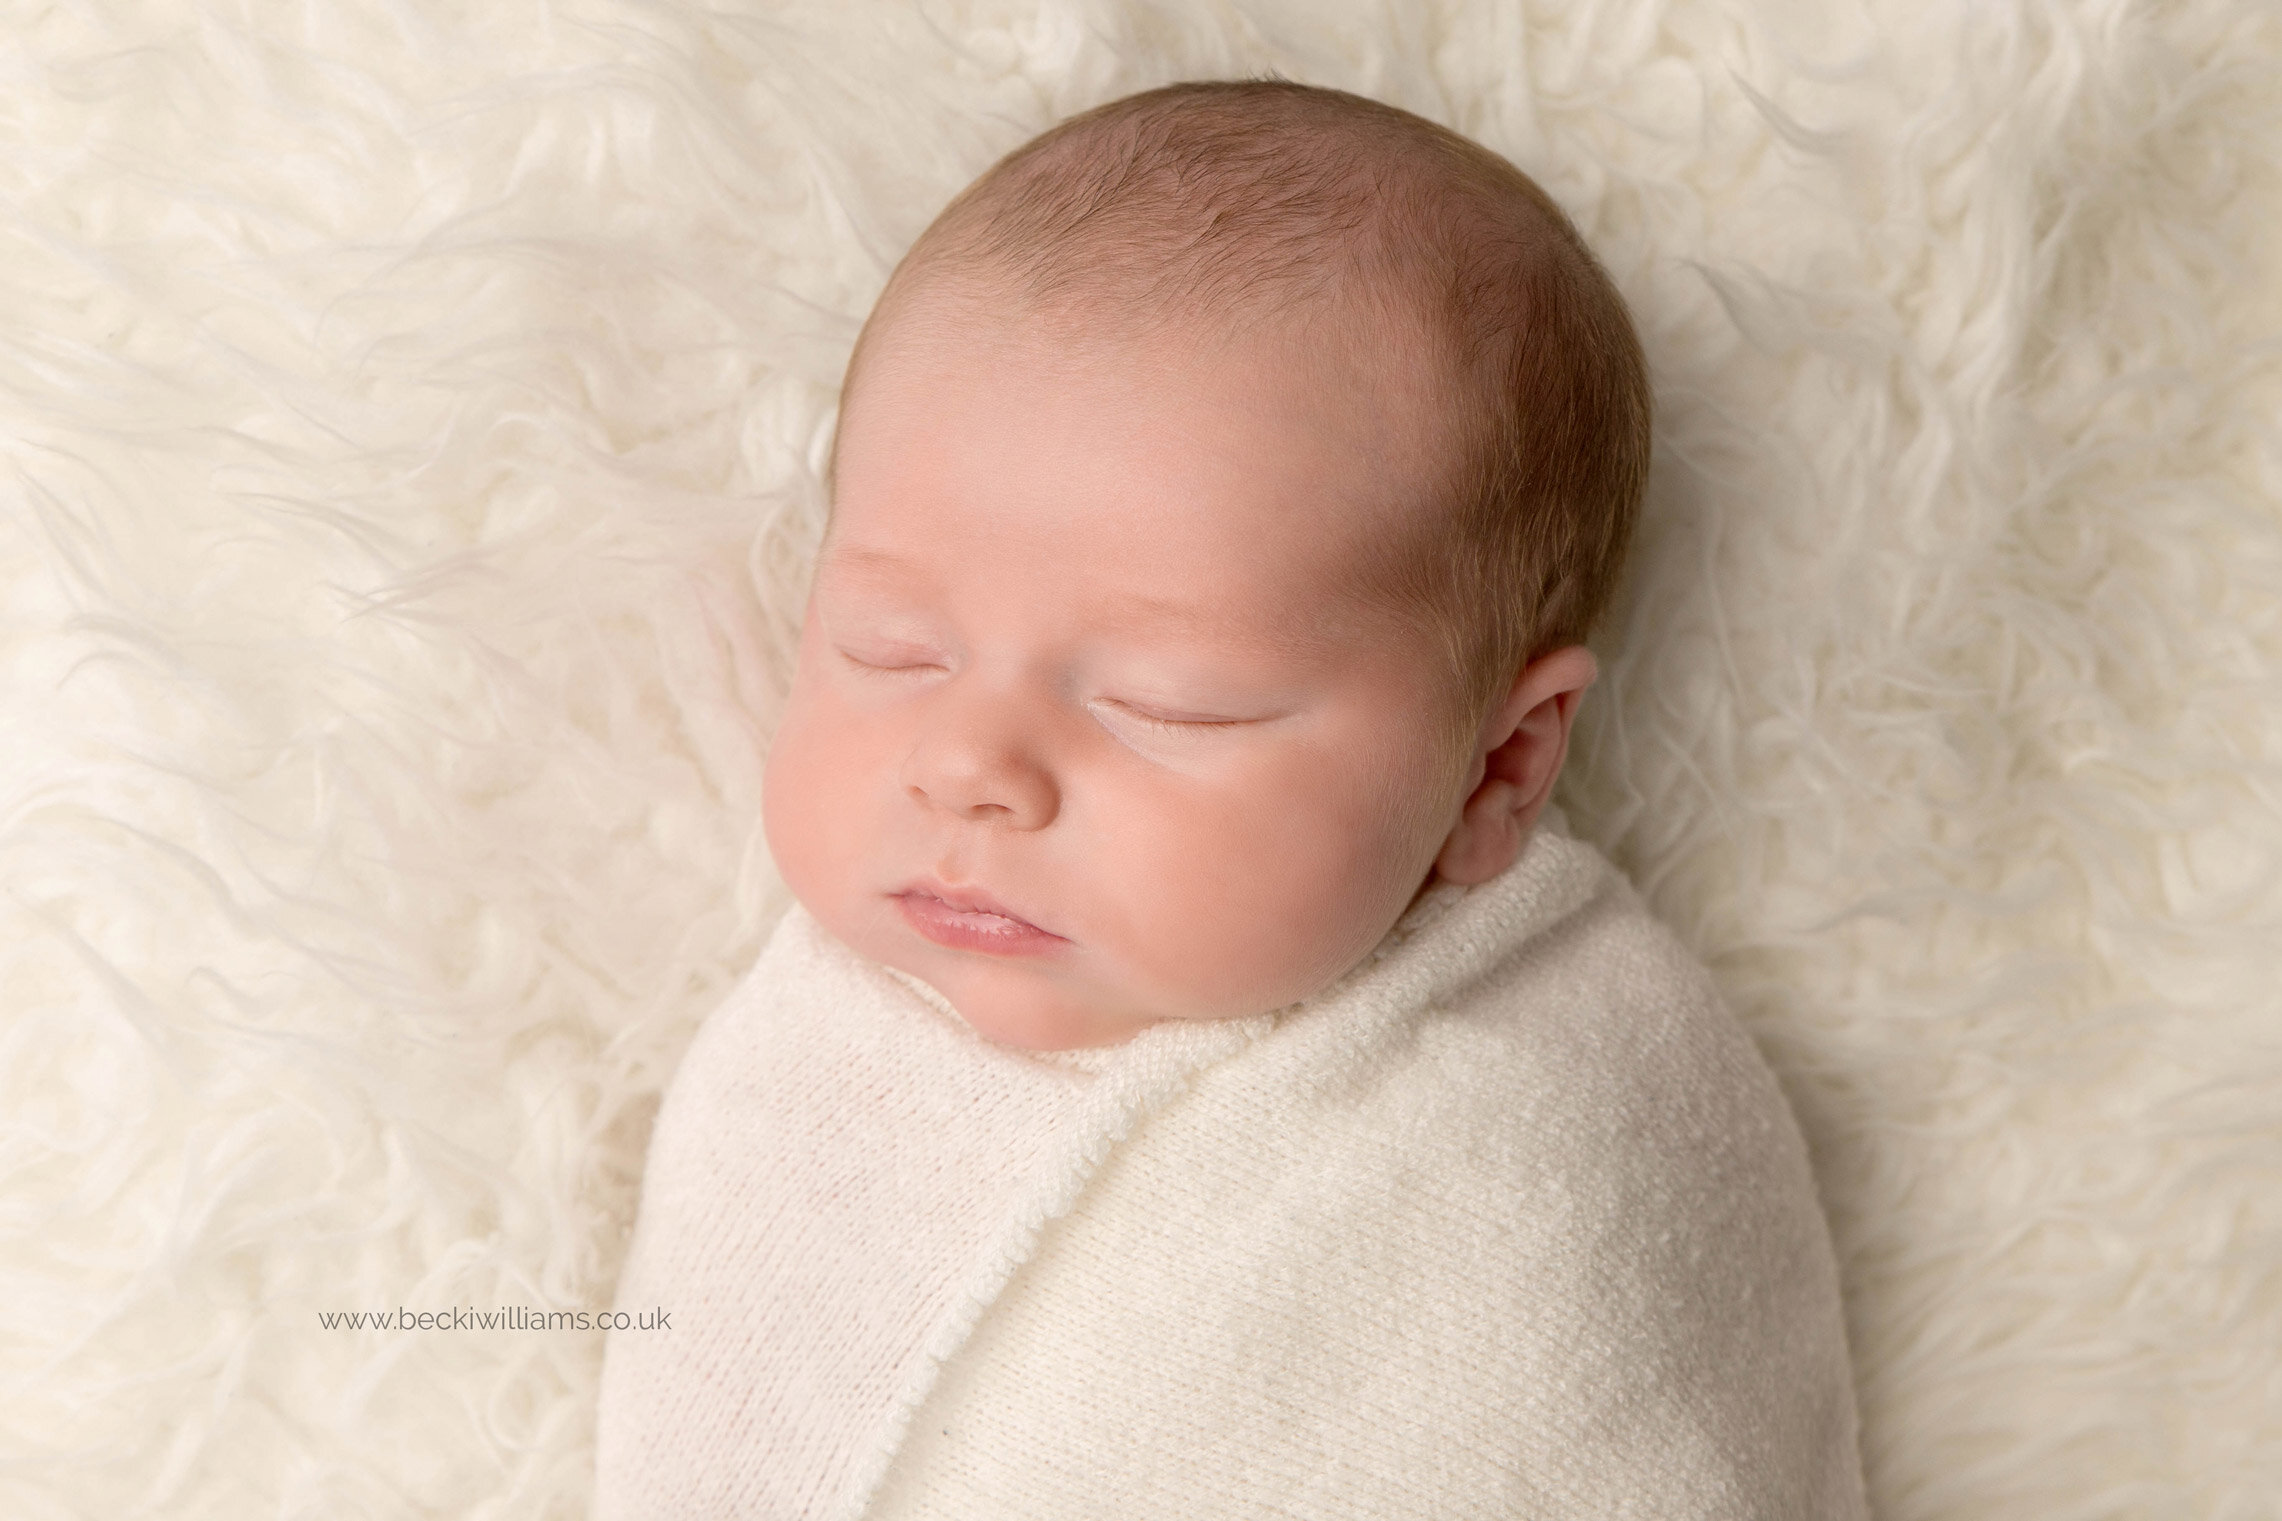 newborn baby boy wrapped in a white wrap, laying asleep on a white fluffy blanket for his newborn pictures in hemel hempstead